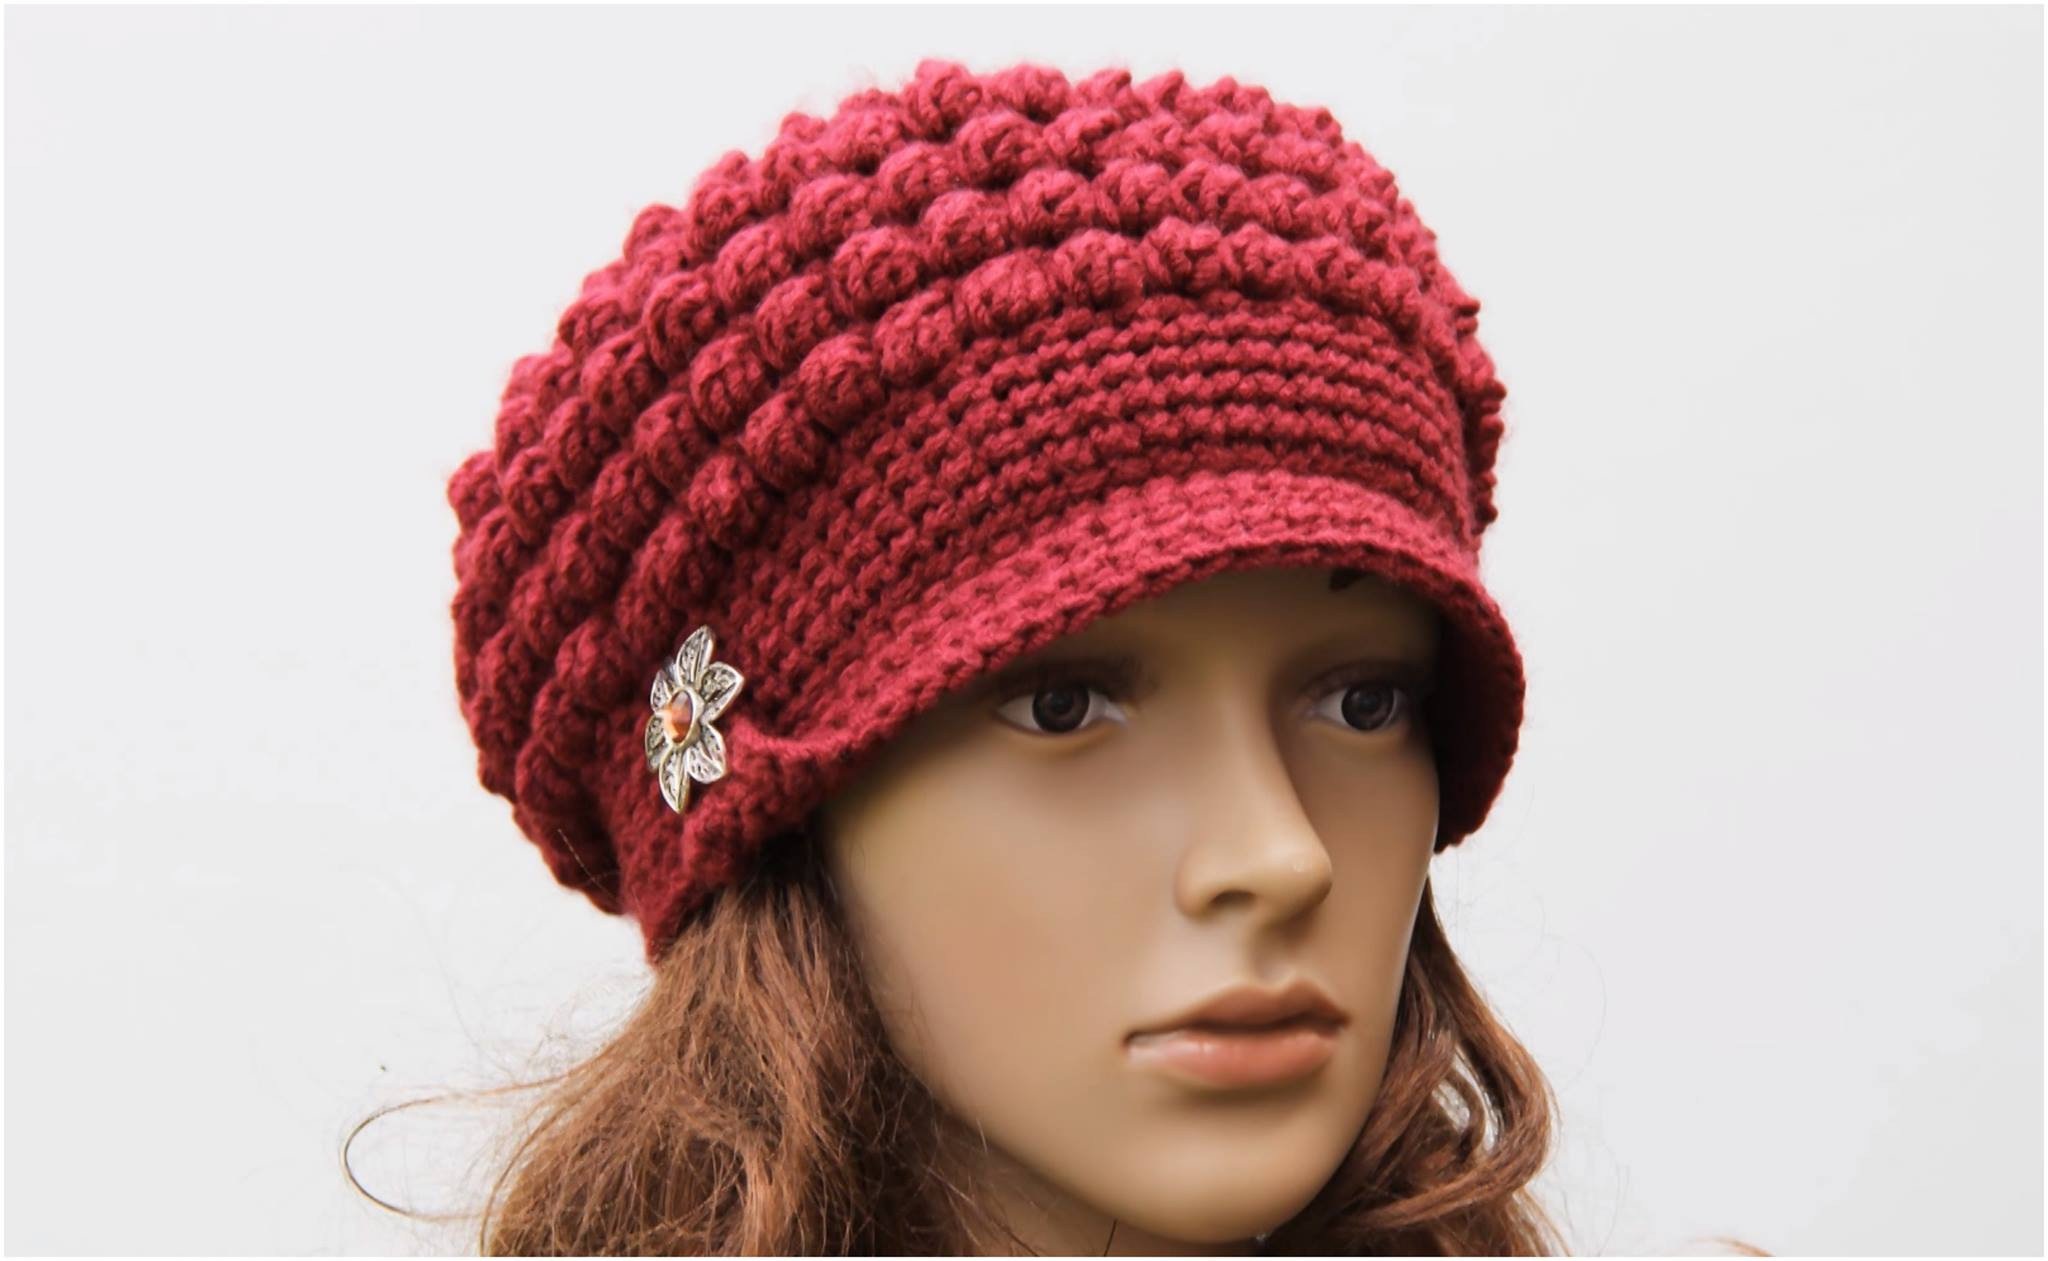 Crochet Hat with Brim Awesome Crochet Brimmed Hat Free Pattern Yarnandhooks Of Marvelous 46 Ideas Crochet Hat with Brim